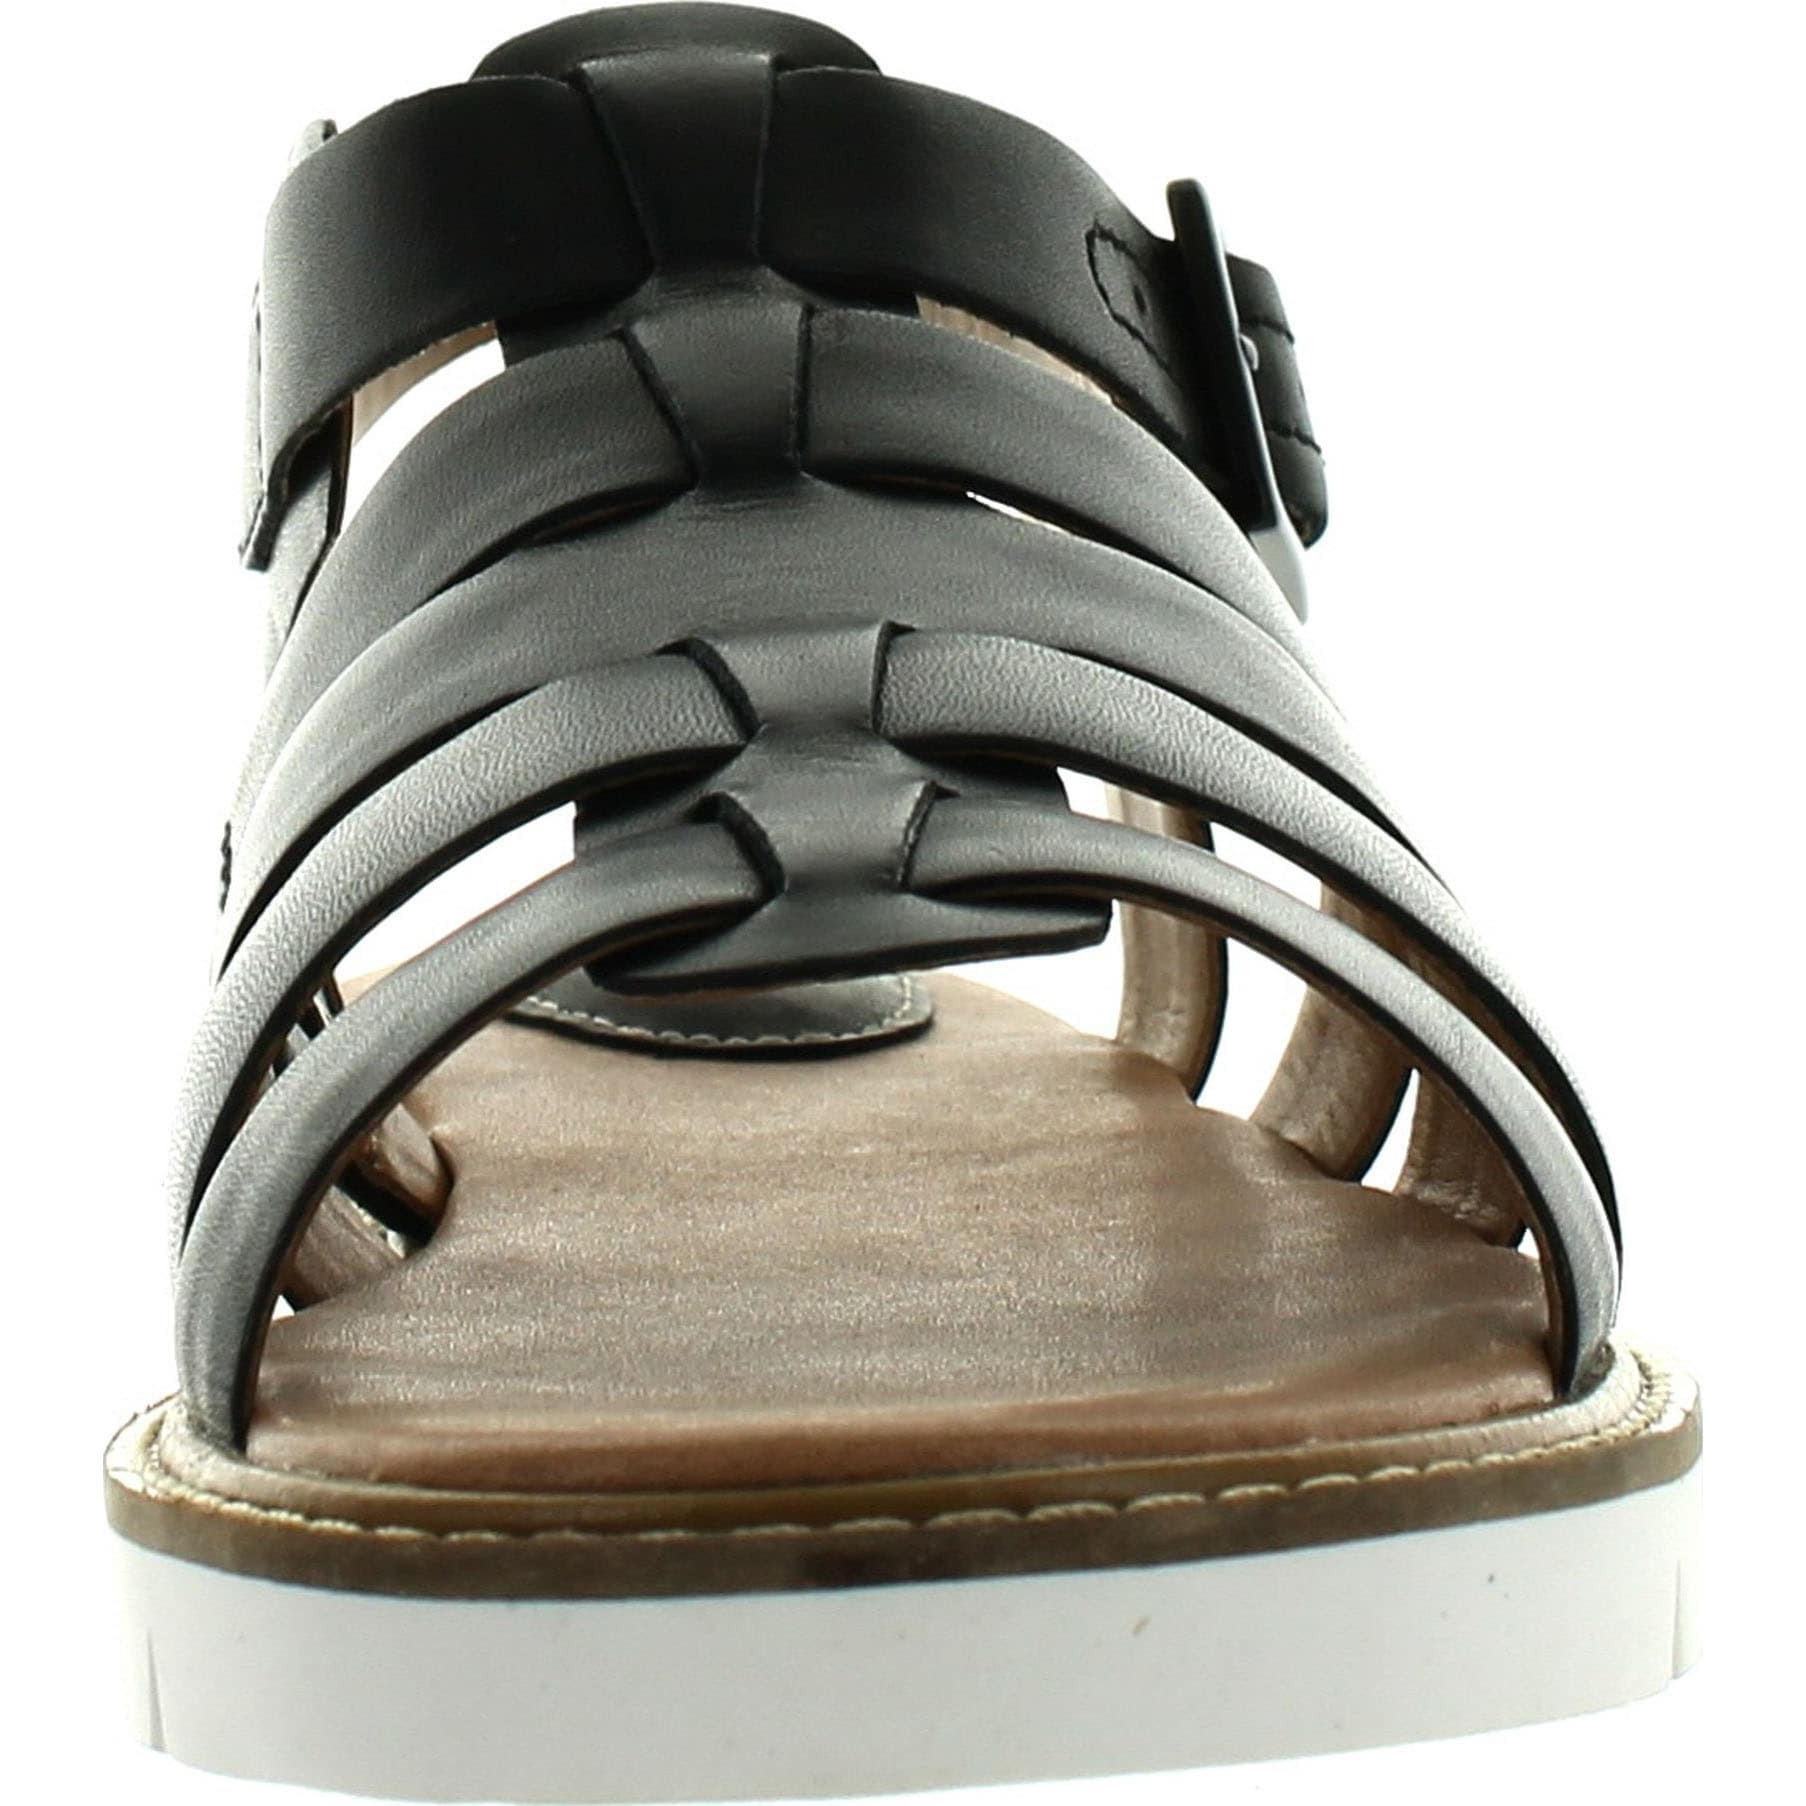 399a9ee2dd64 Shop Clarks Lydie Kona Women s Sandals - Free Shipping Today - Overstock -  14312332